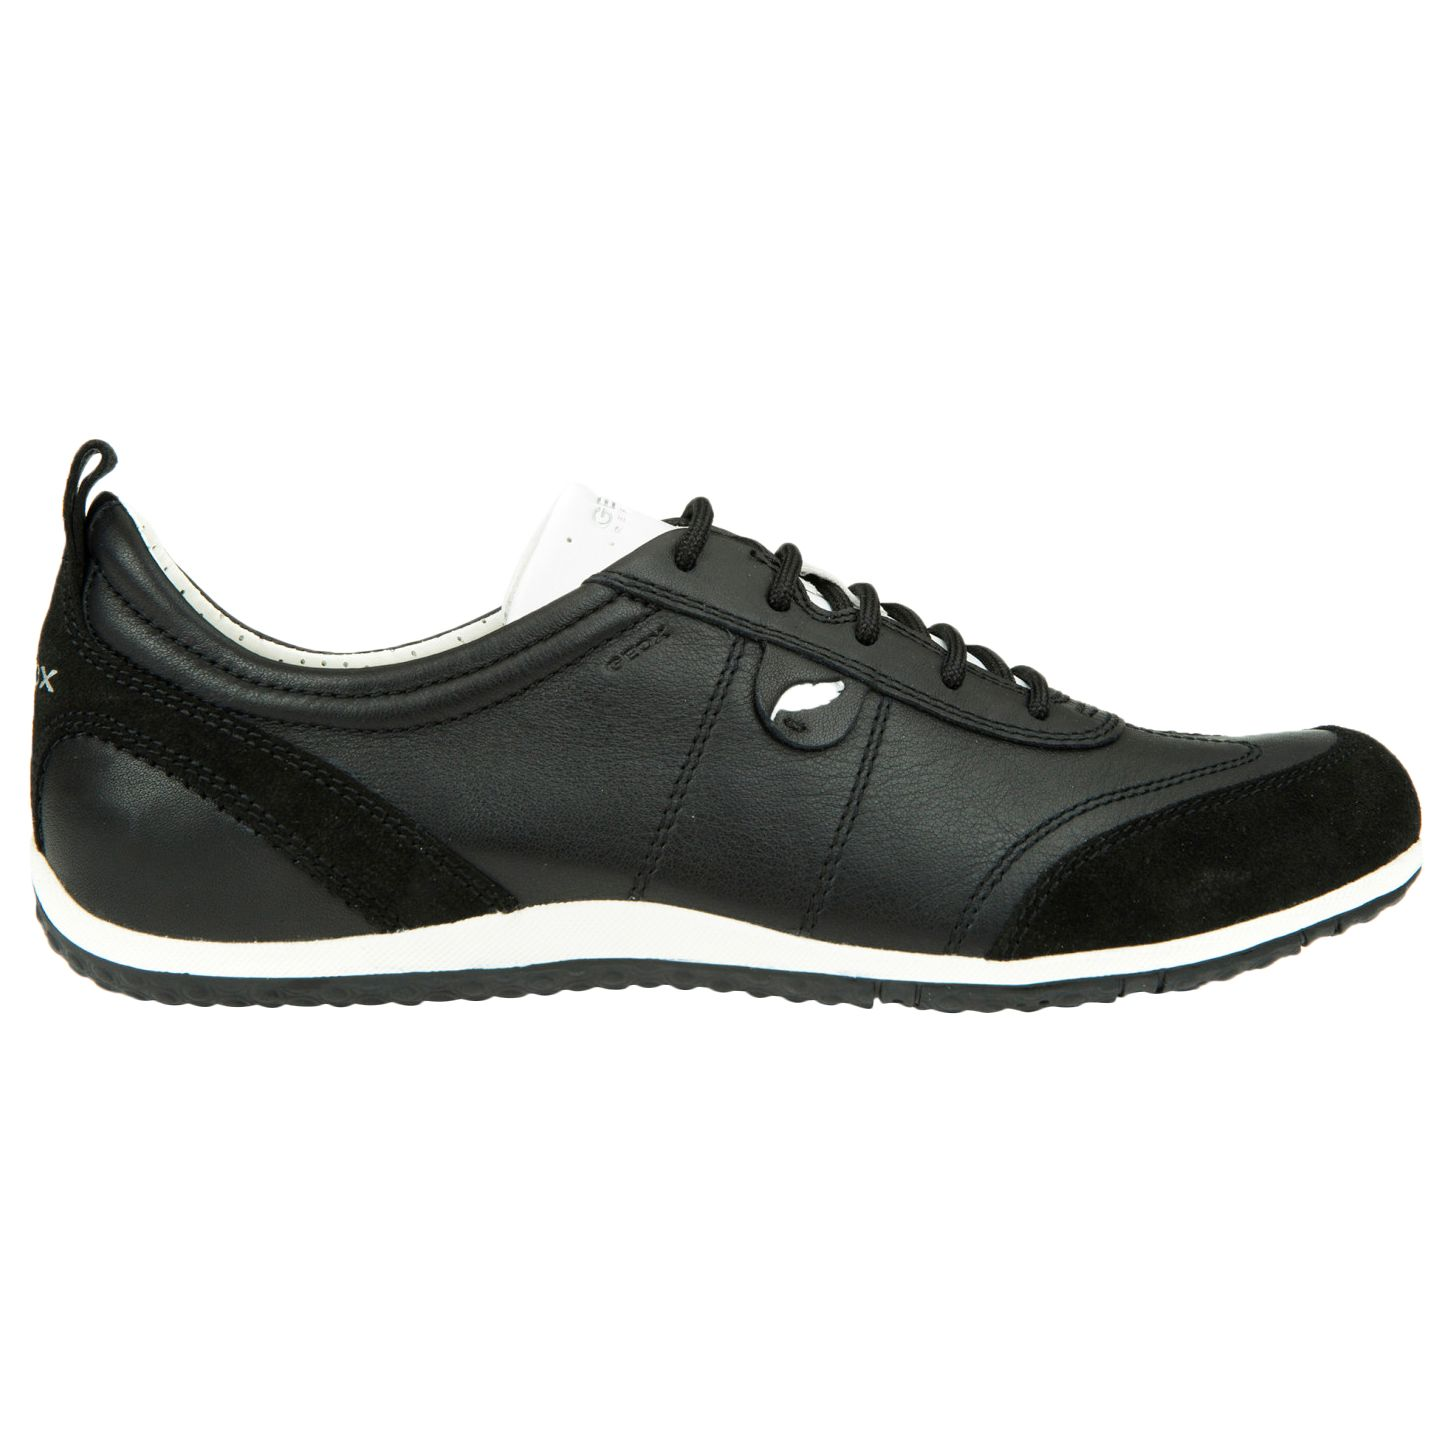 Geox Geox Vega Leather Lace Up Trainers